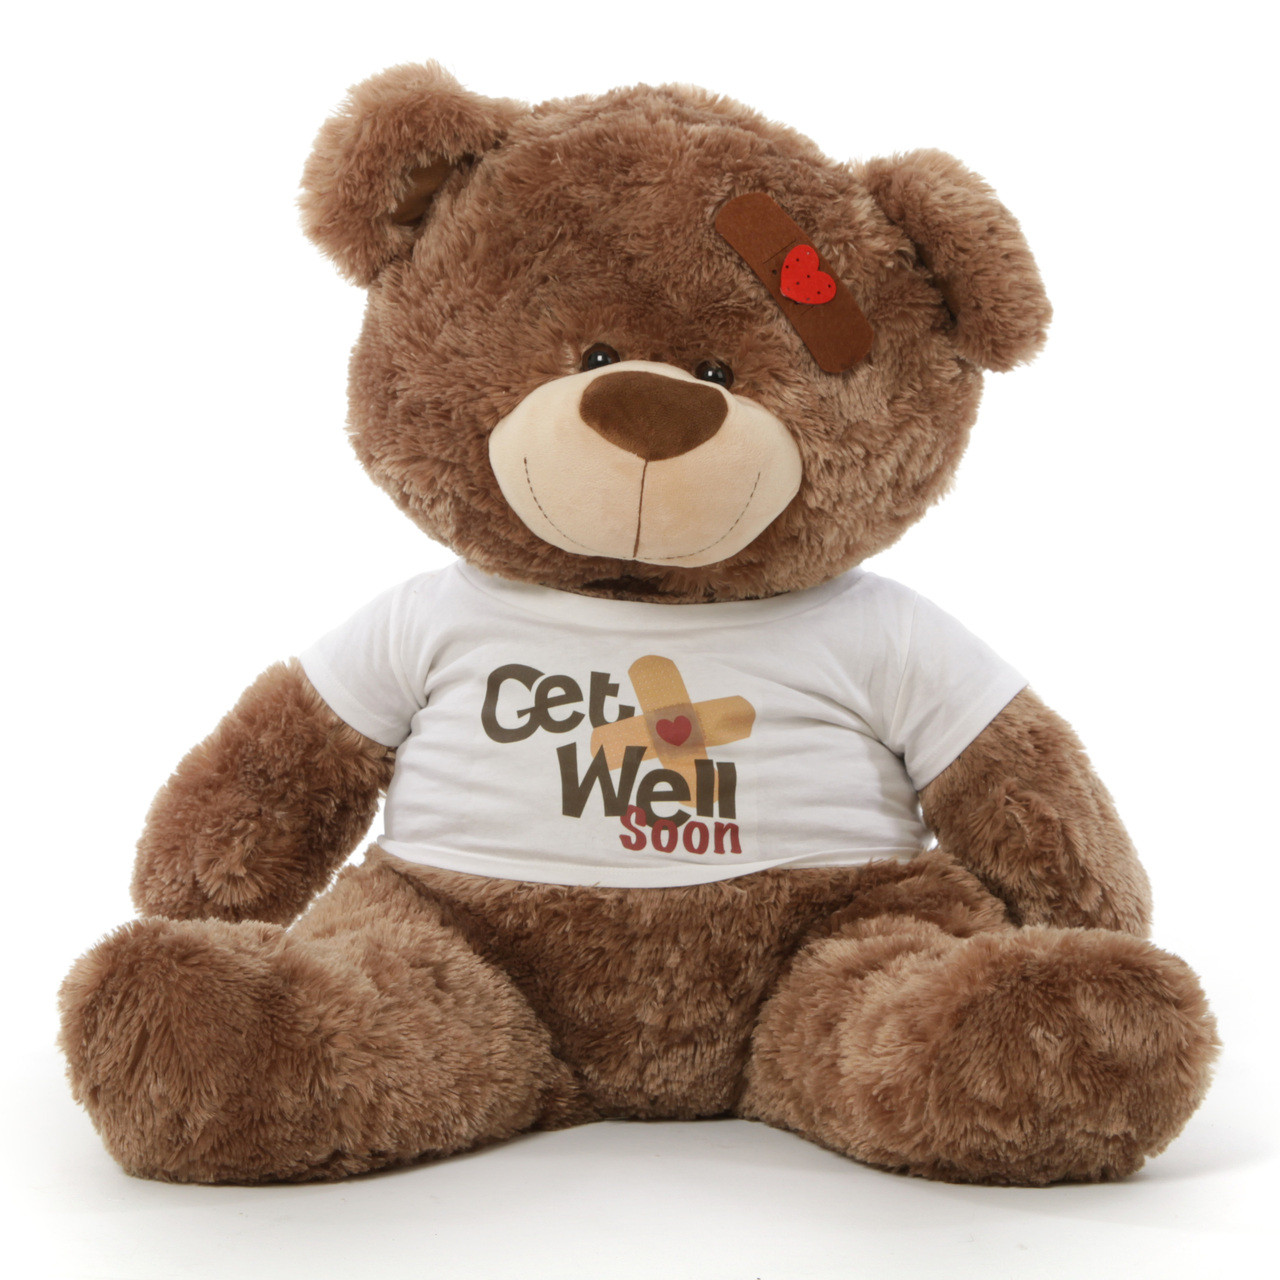 c554e226950 Adorable Big Get Well Soon Teddy Bears in 3 colors with custom shirt ...